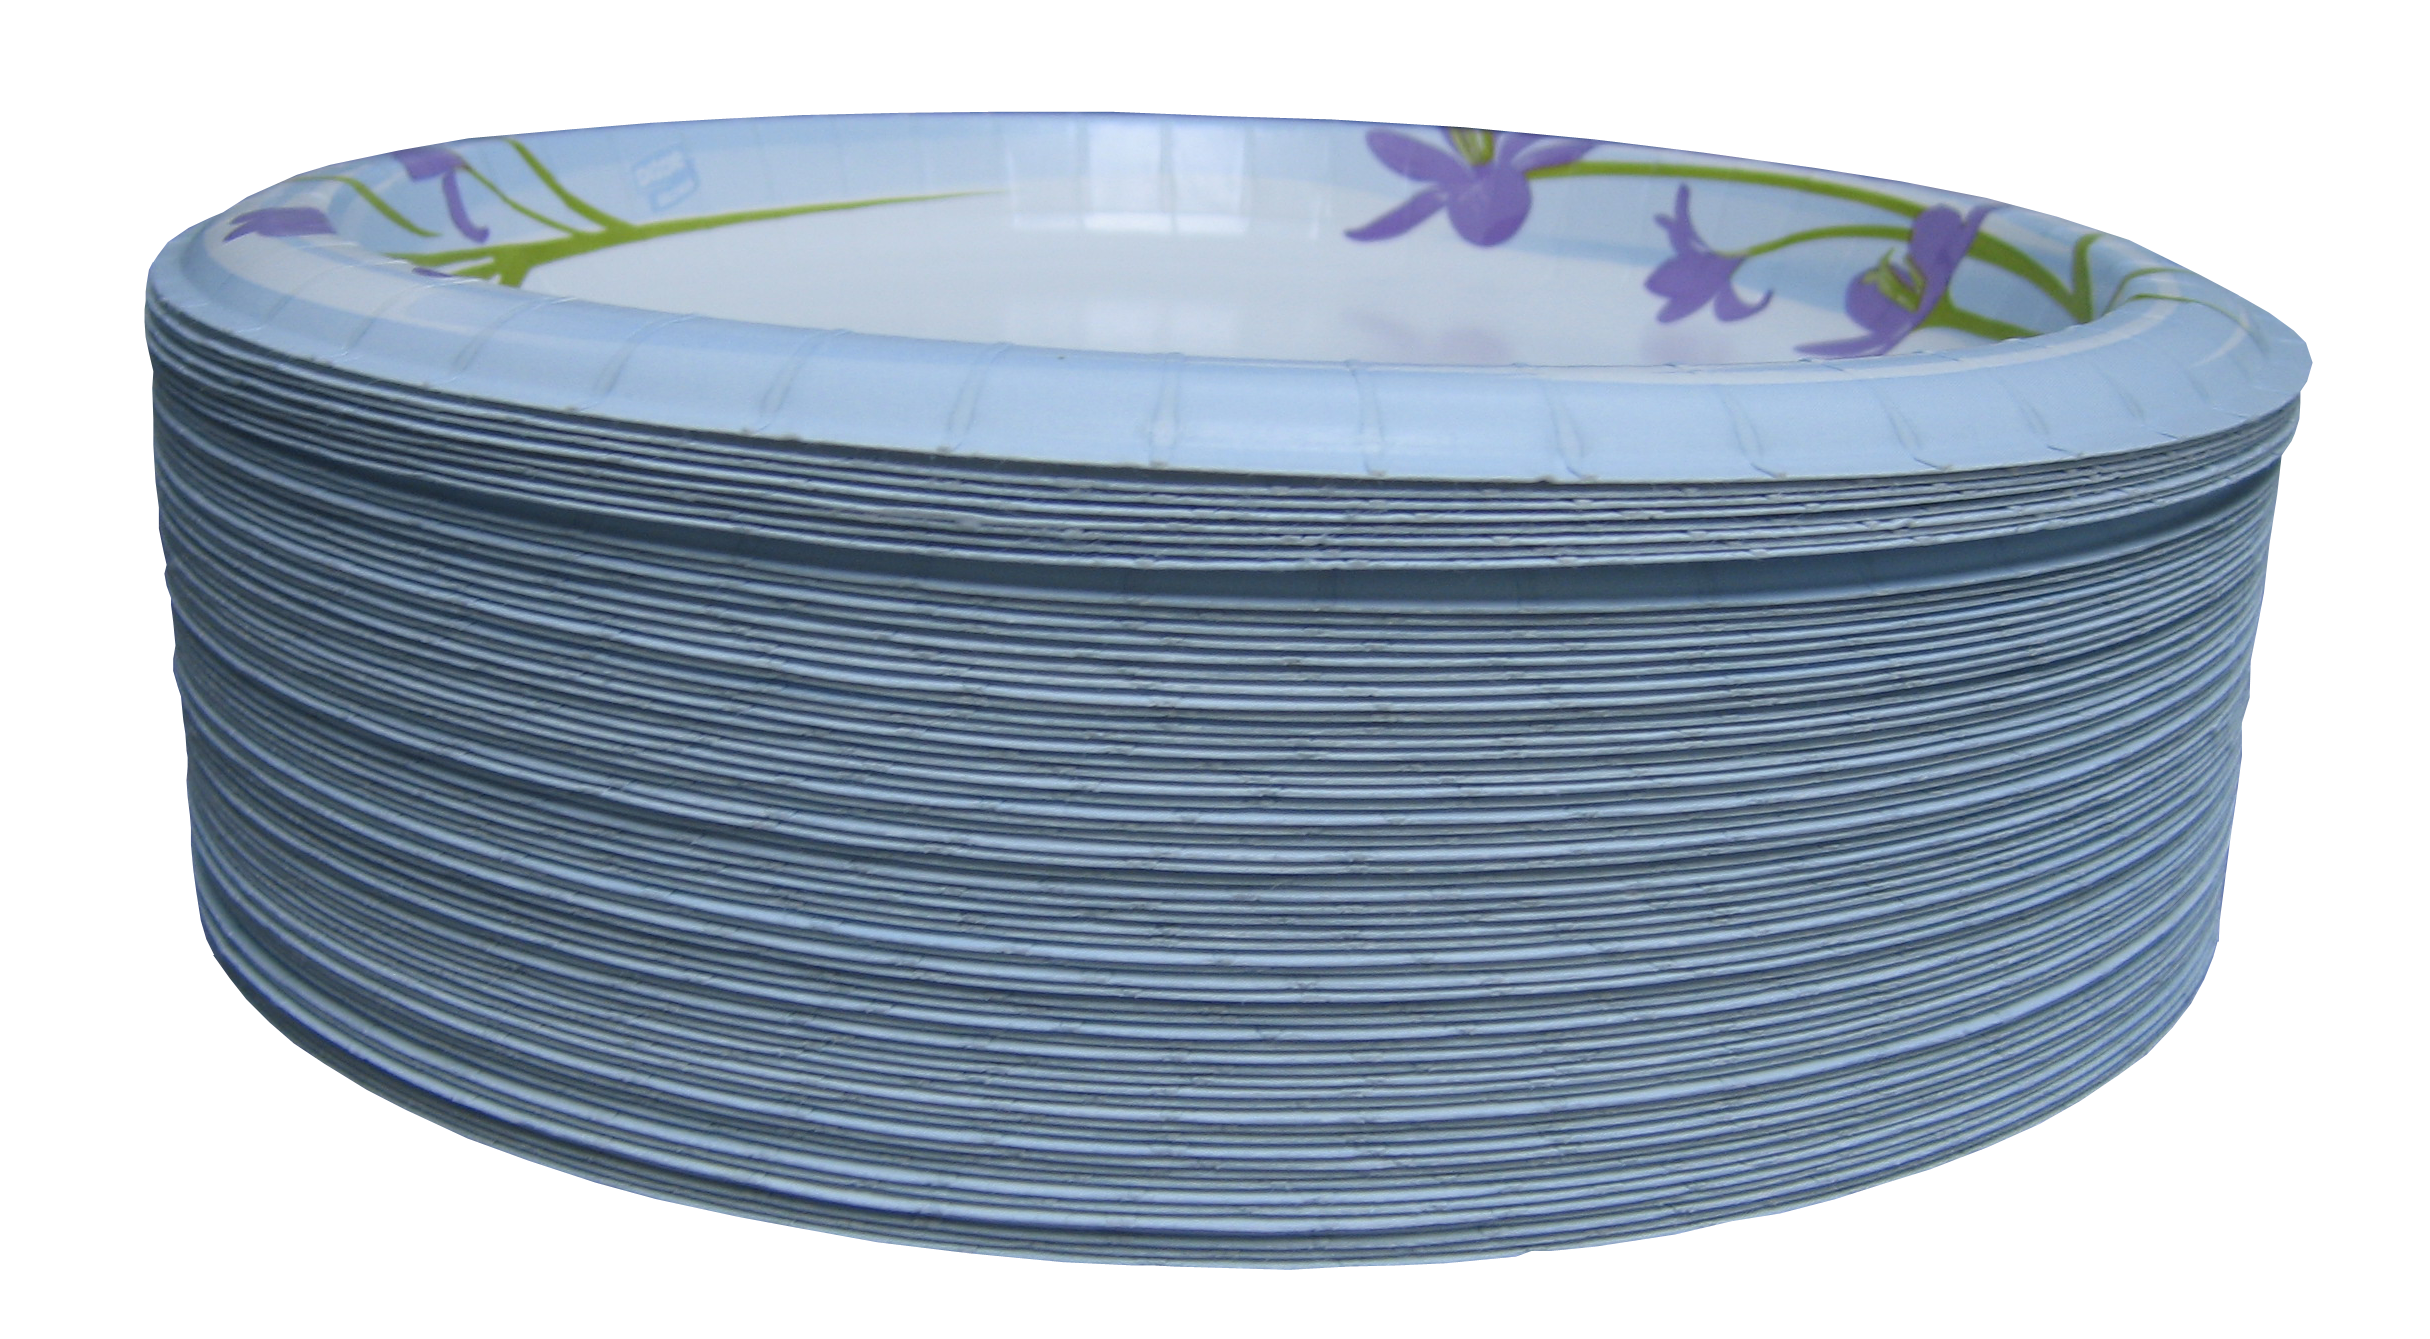 FilePaper plates - isolated.png  sc 1 st  Wikimedia Commons & File:Paper plates - isolated.png - Wikimedia Commons